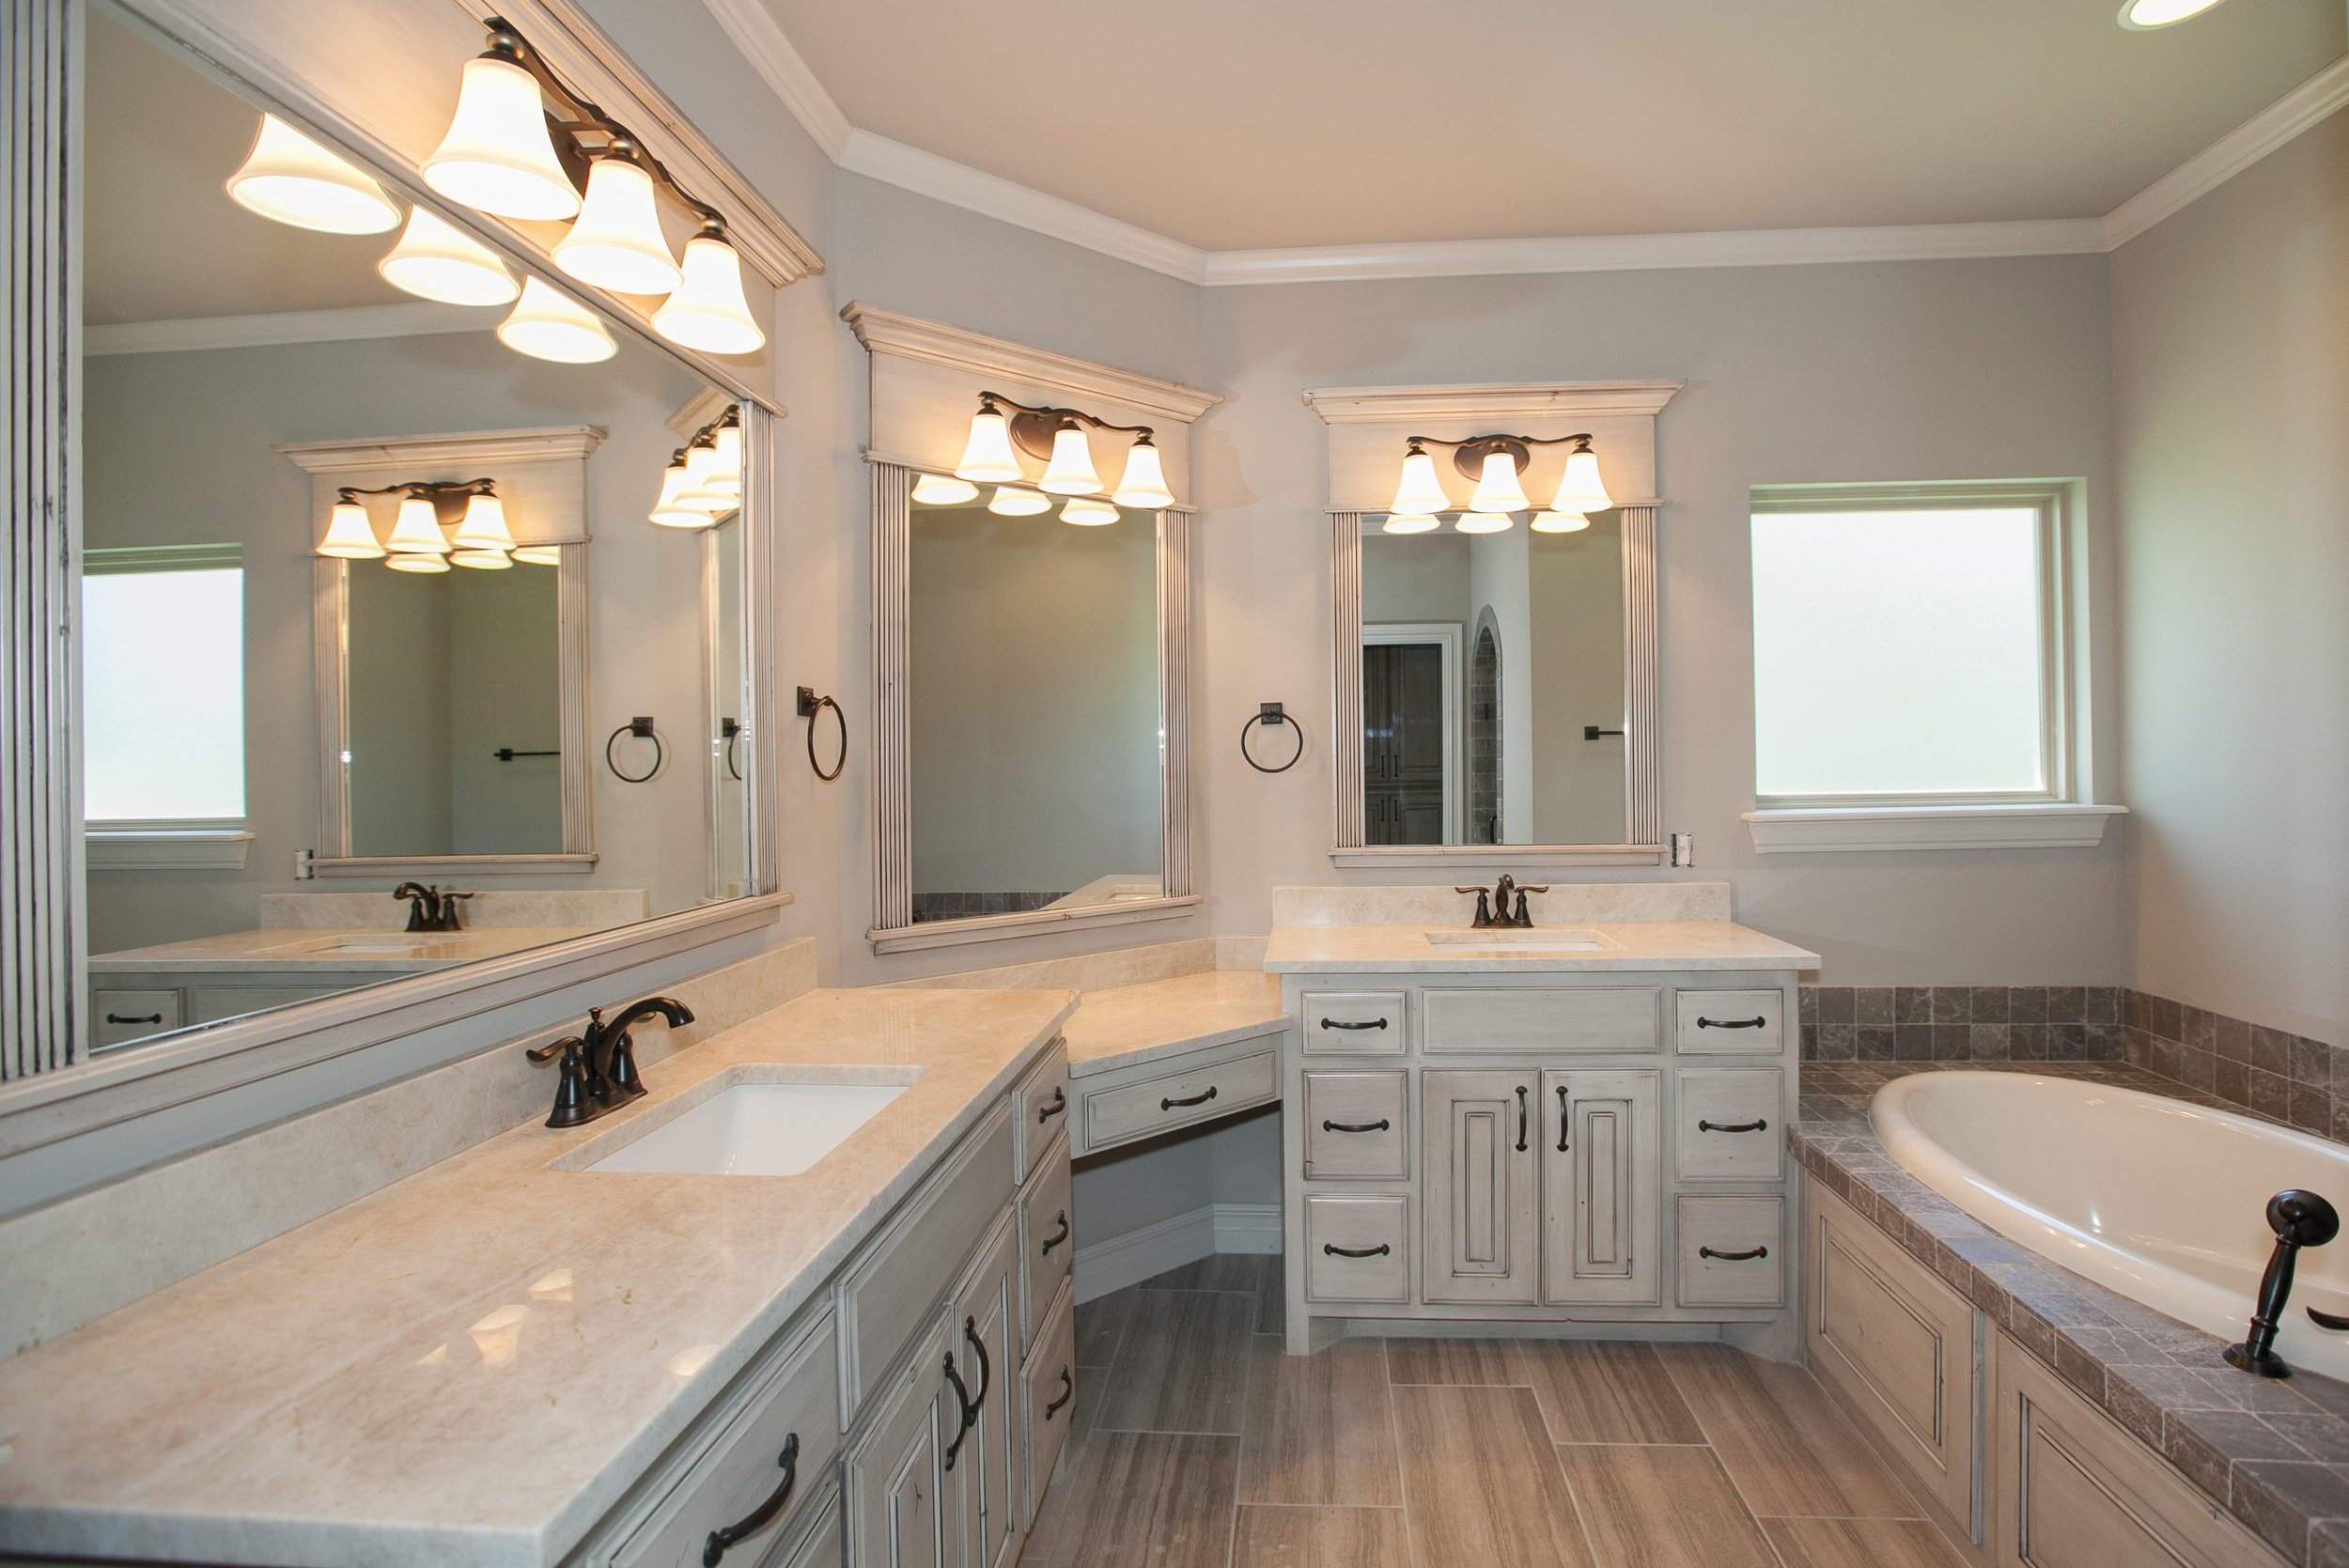 020_Master Bathroom.jpg